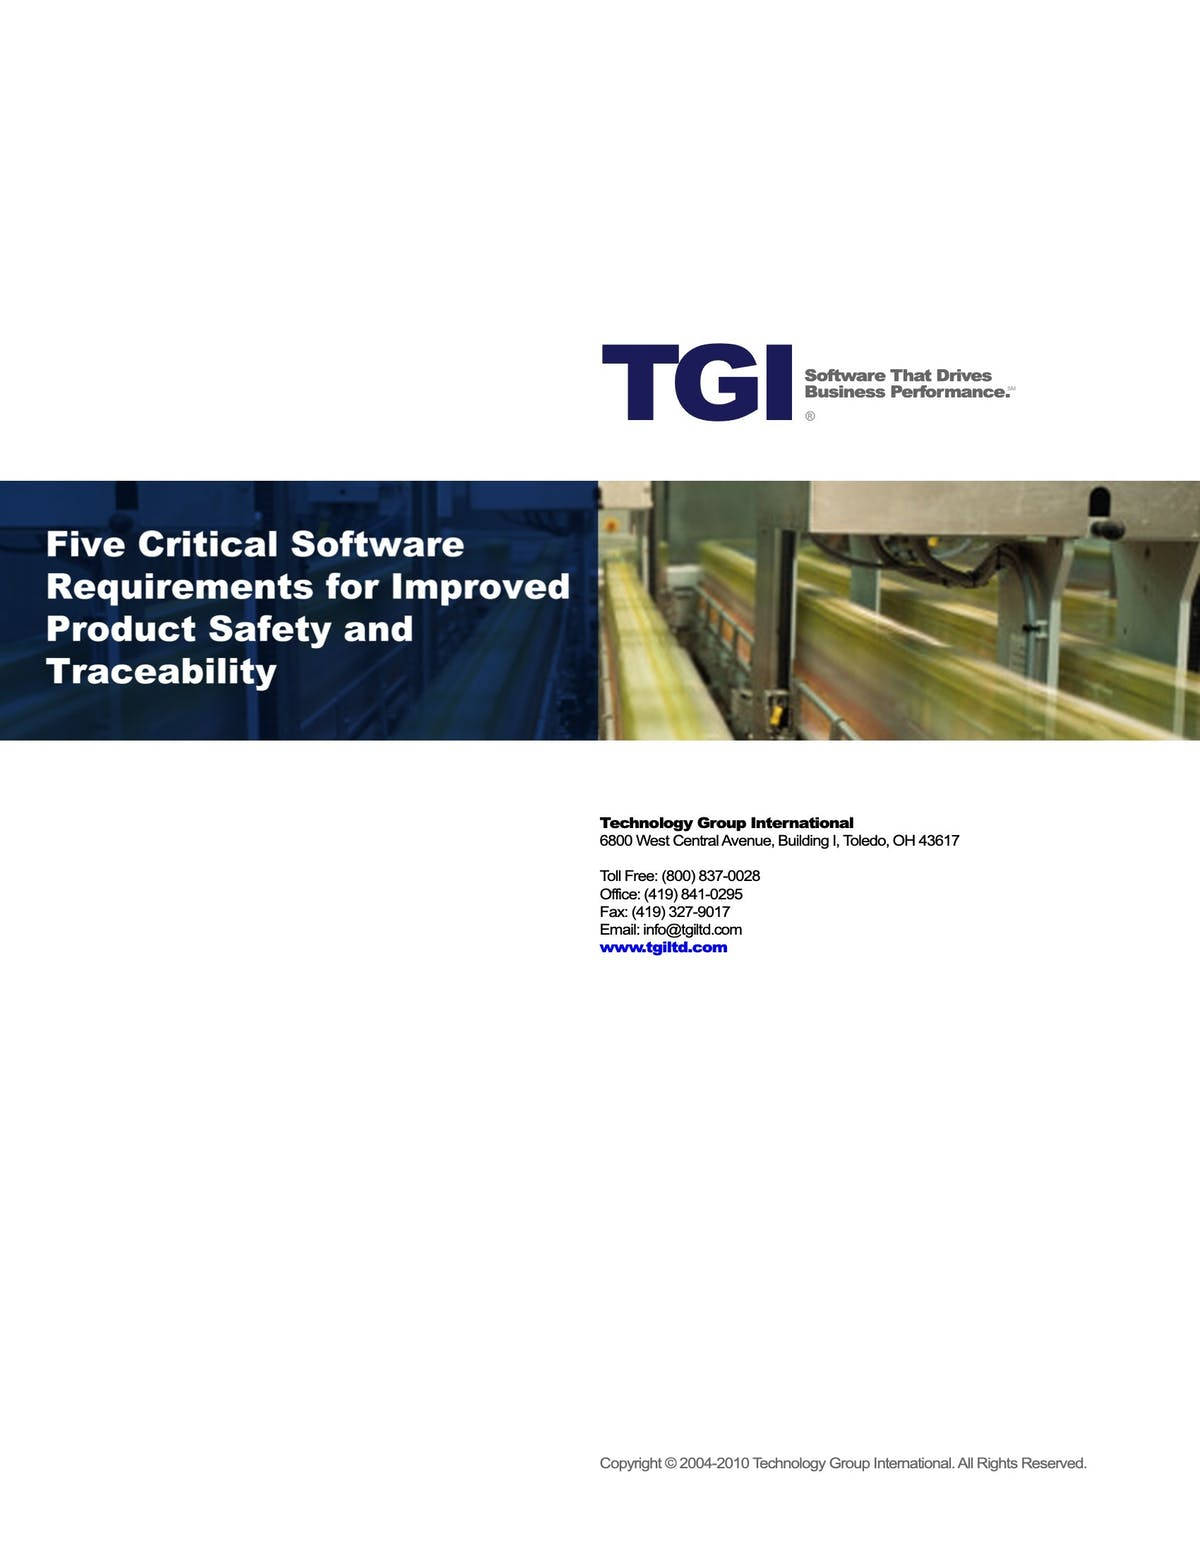 Enterprise 21 ERP White Paper - Five Critical Software Requirements for Improved Product Safety and Traceability